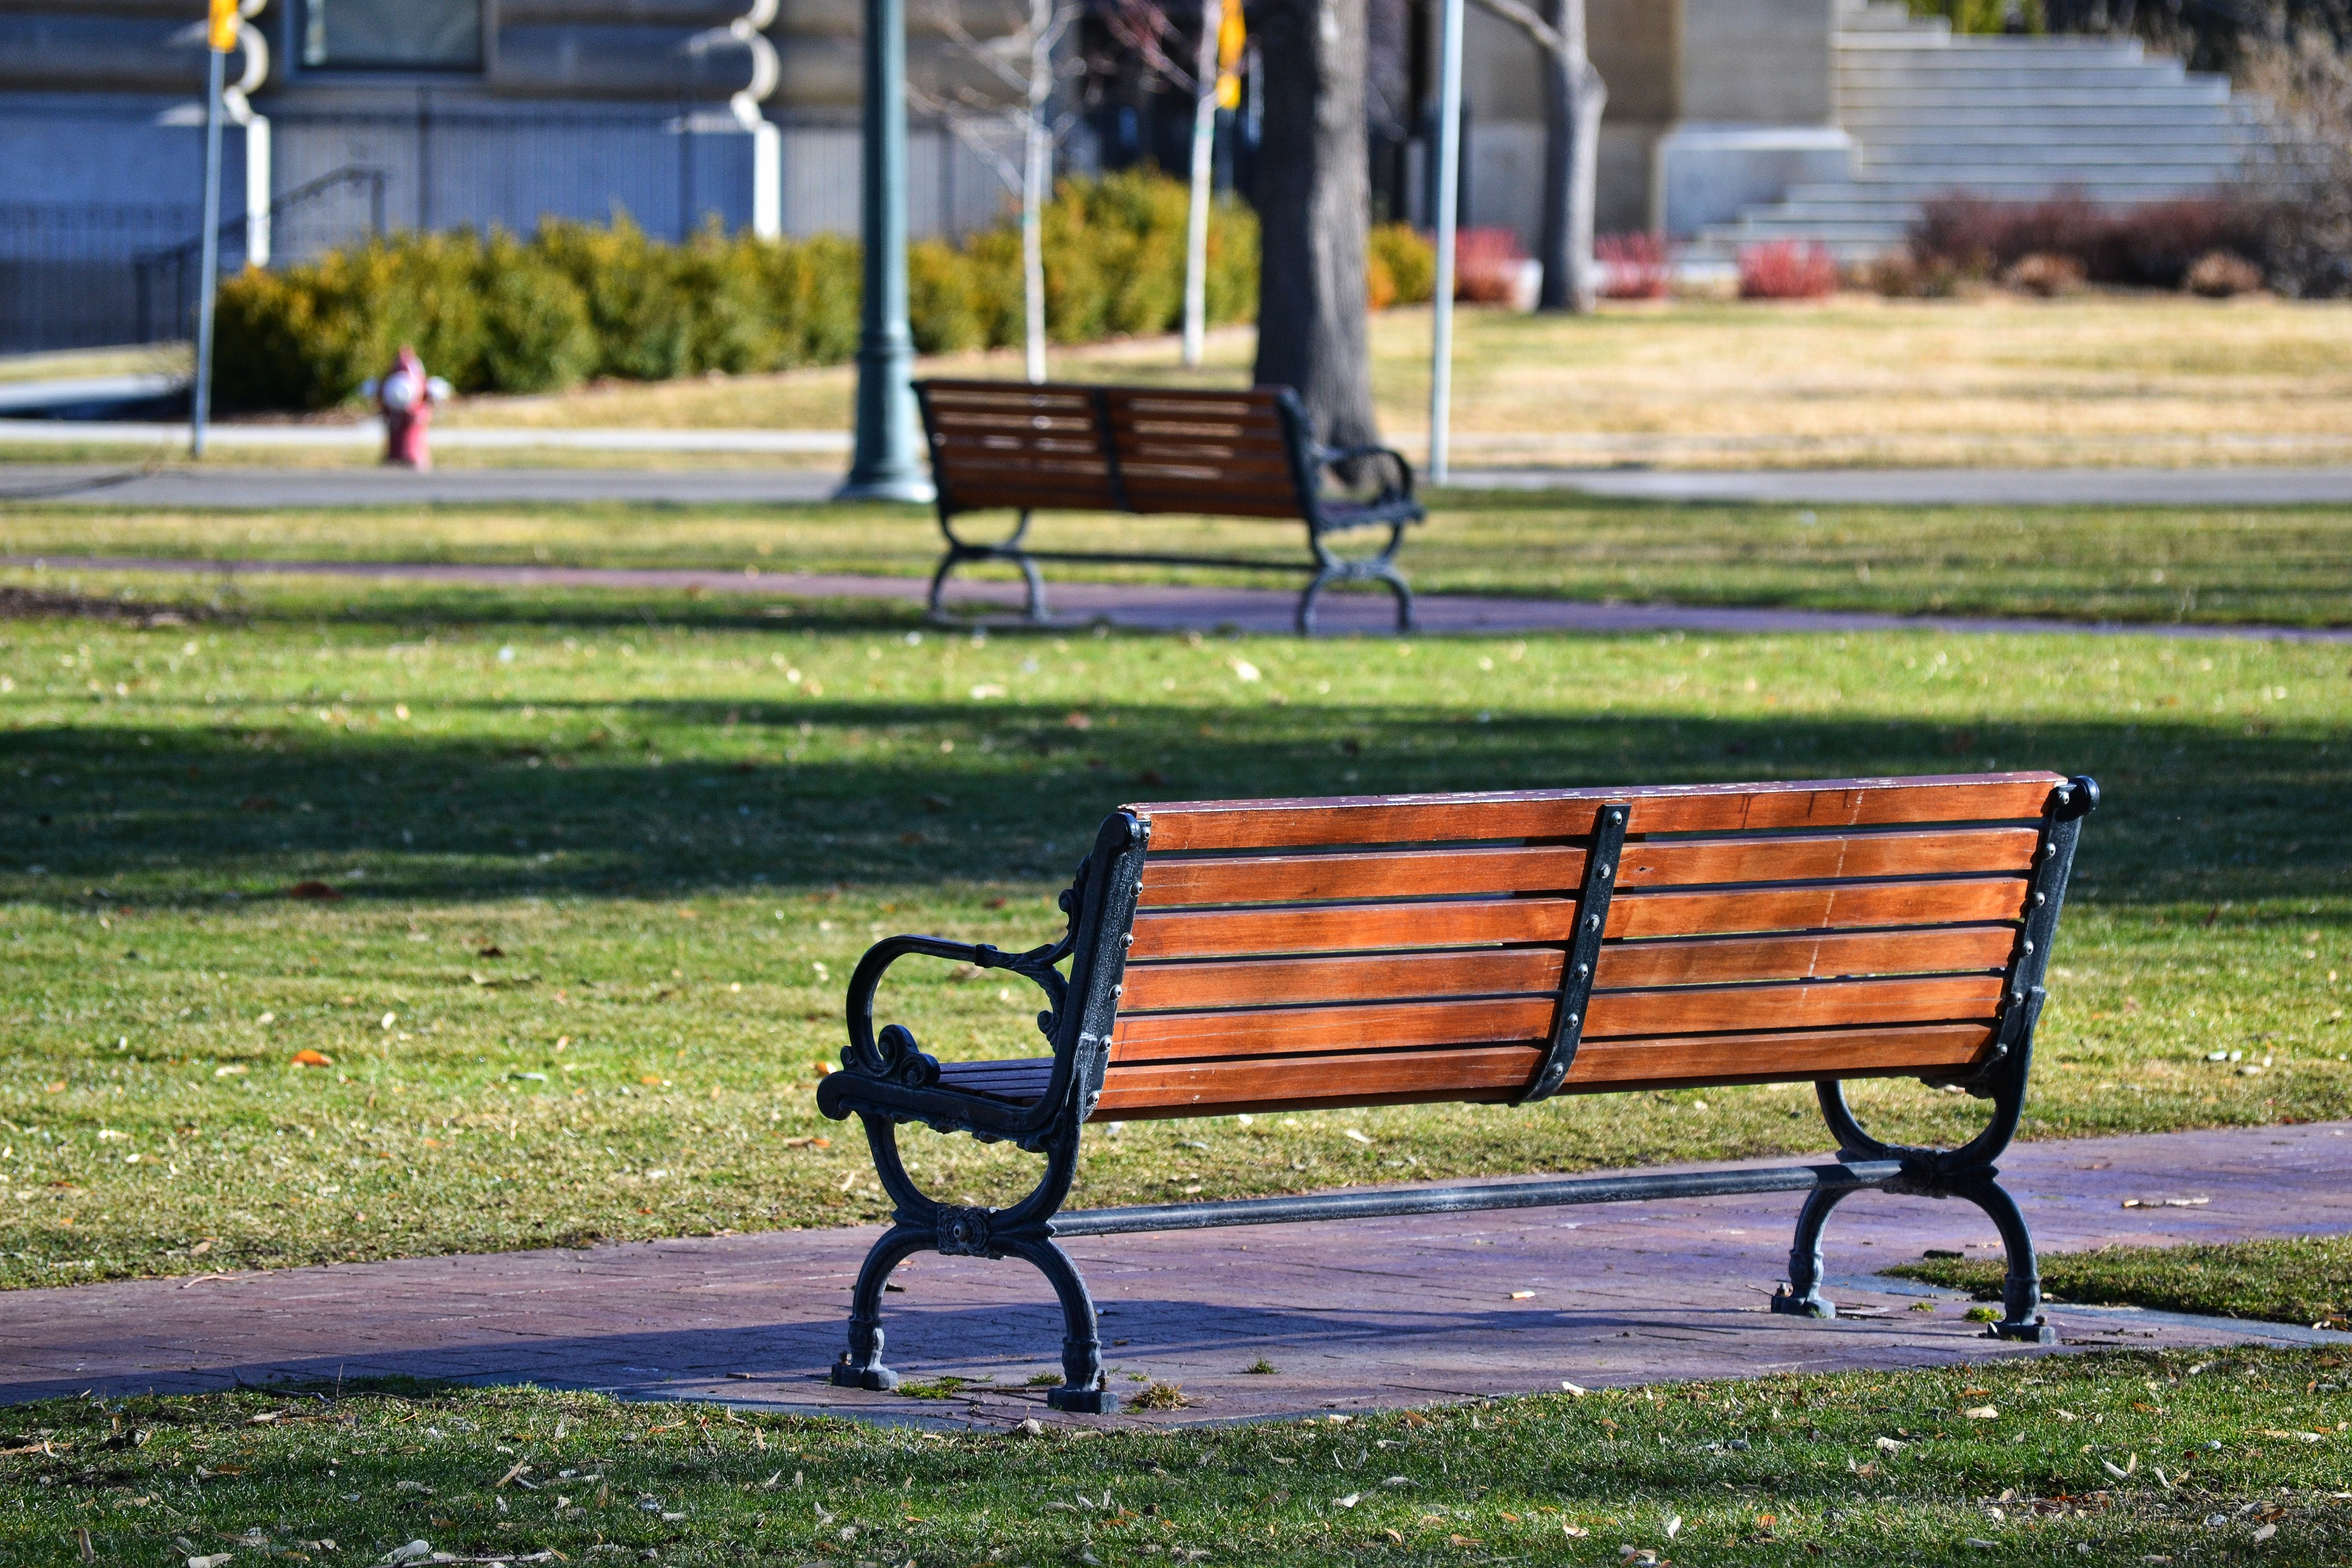 Black and Brown Bench Near Grass Field, Benches, Lawn, Plants, Pavement, HQ Photo